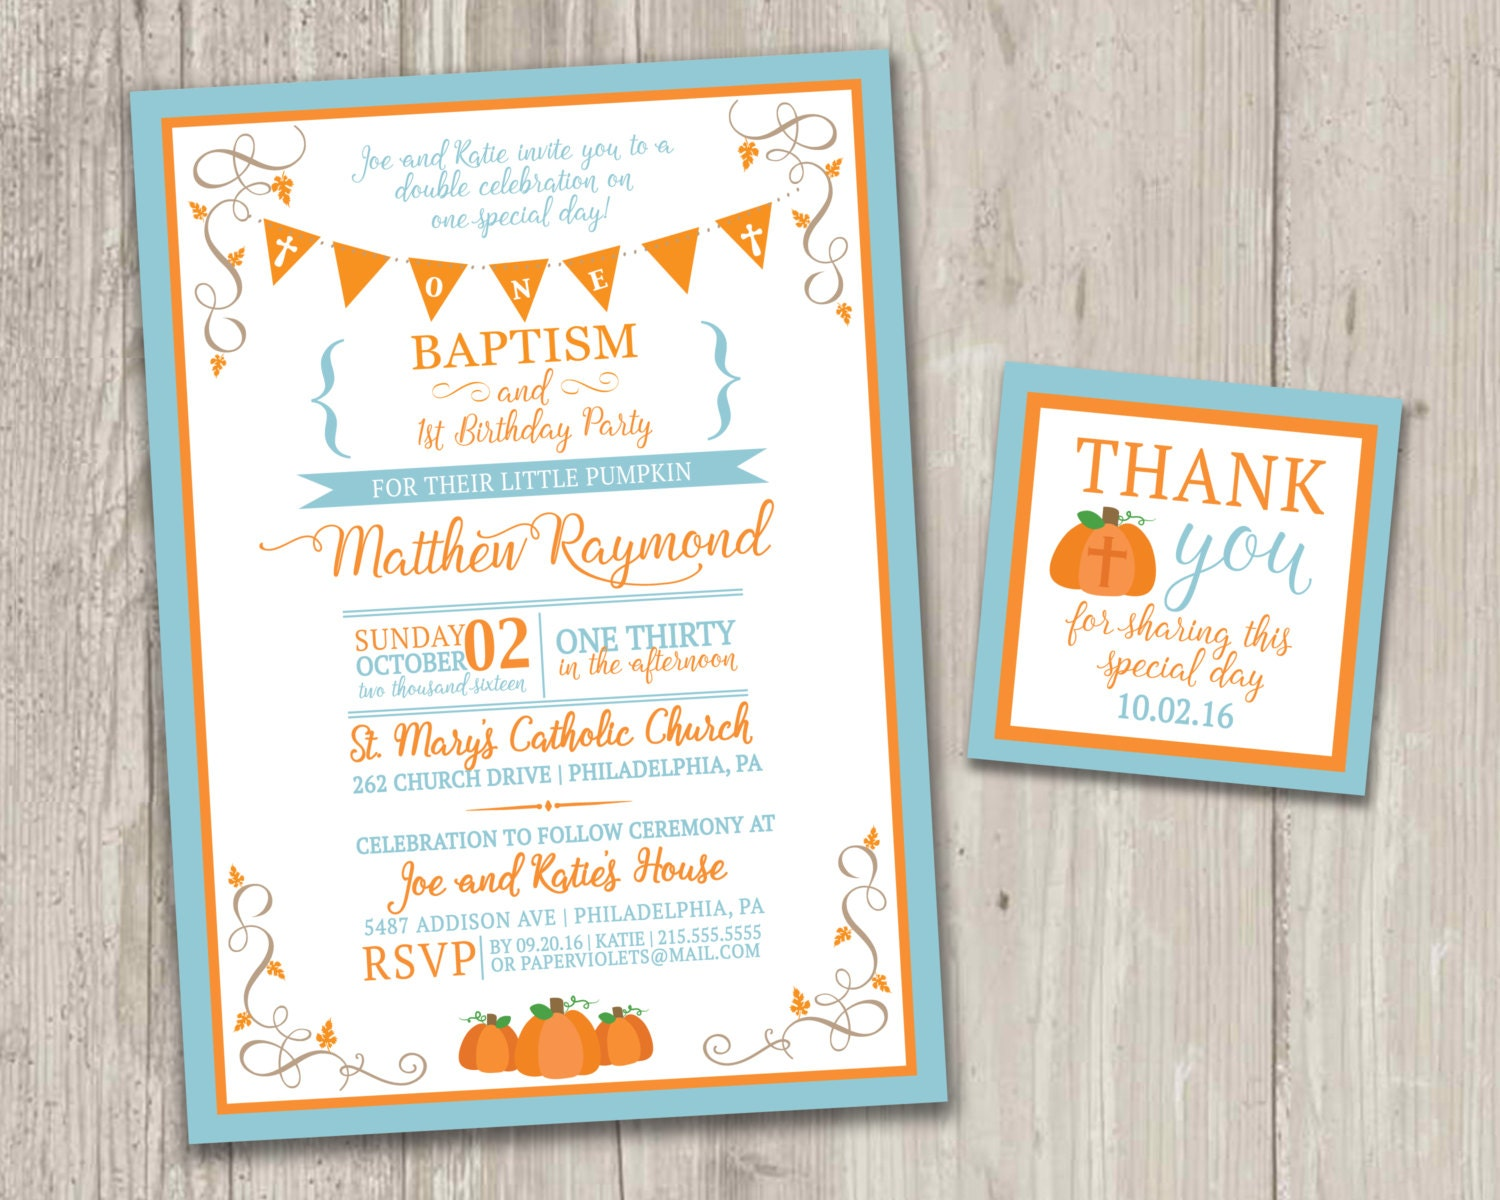 Our Little Pumpkin\'s Baptism & Birthday Invitation | Etsy